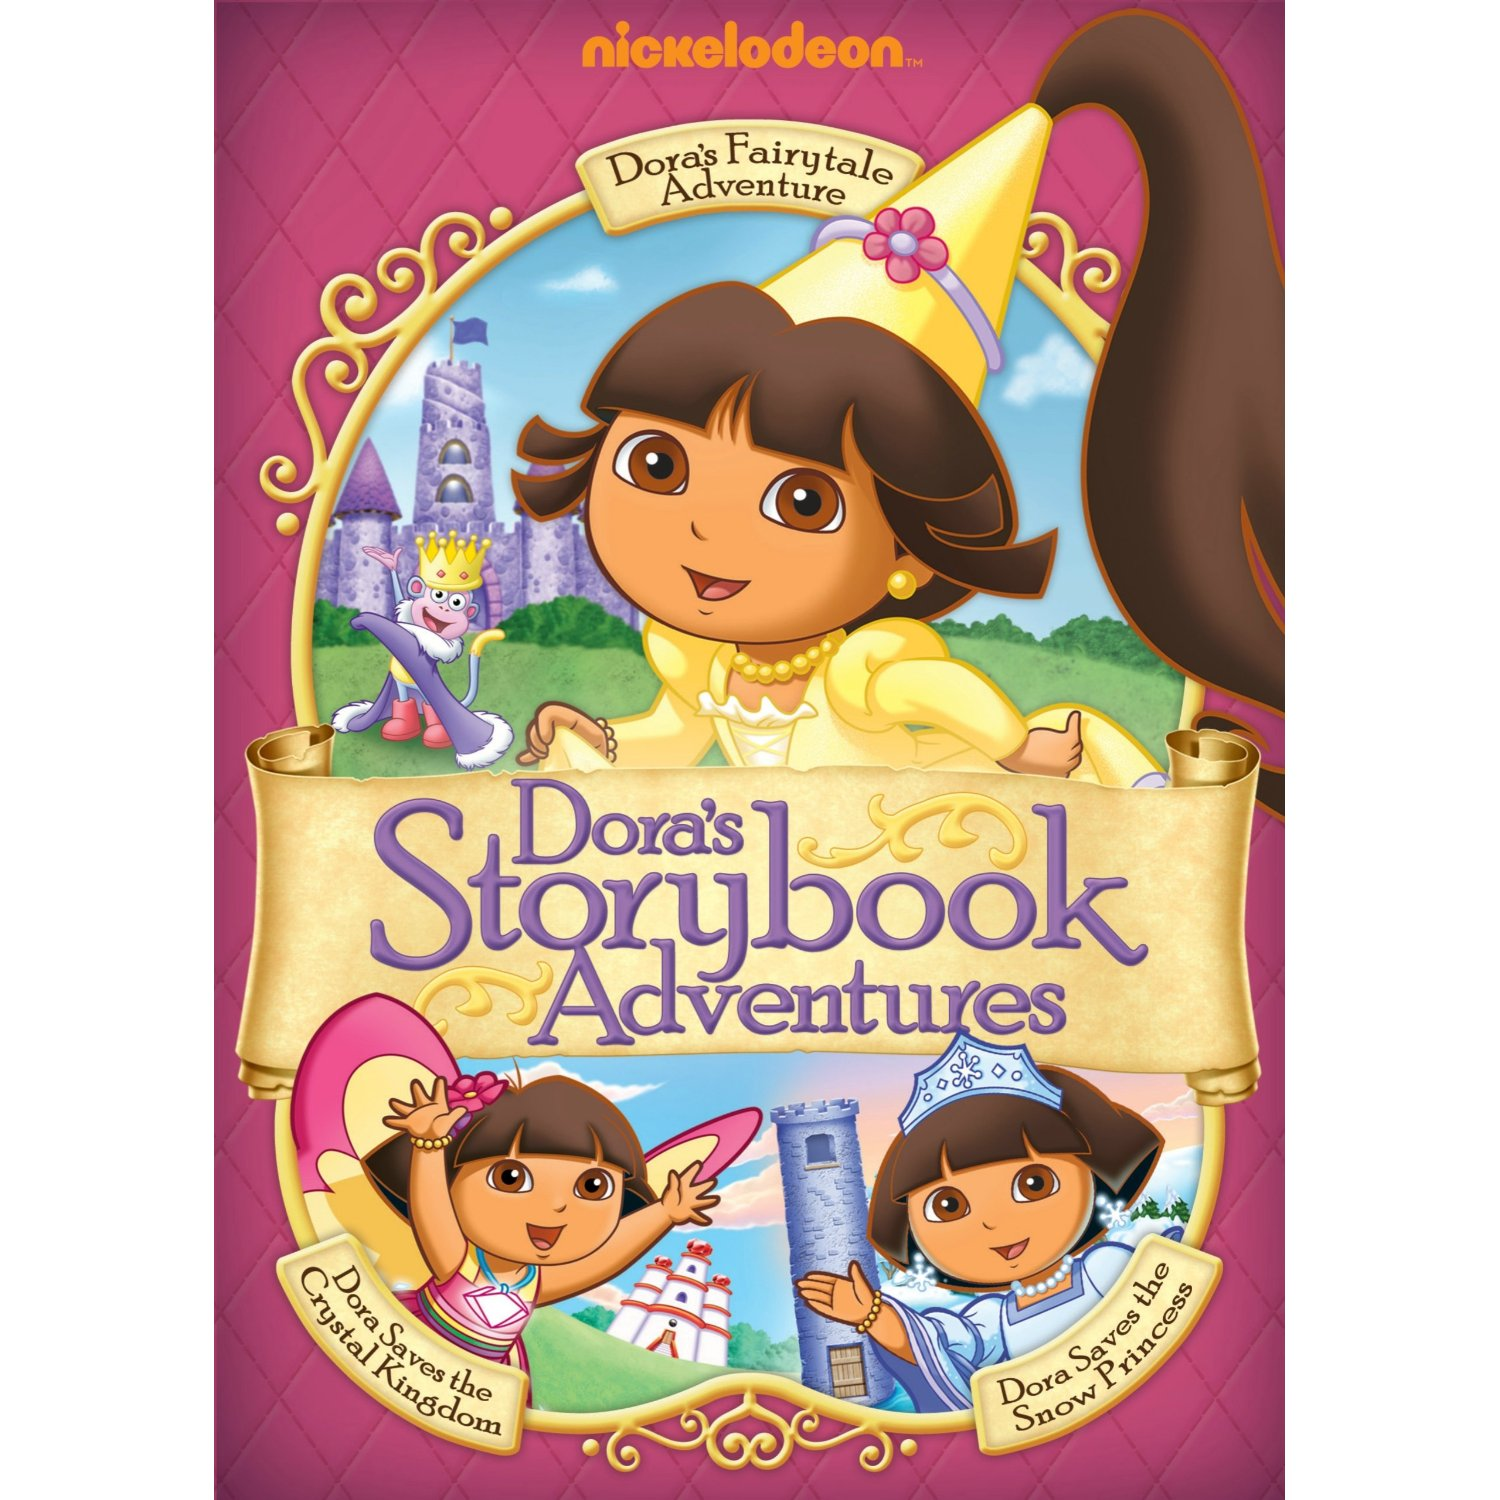 Dora the Explorer: Dora's Storybook Adventures Review and Giveaway